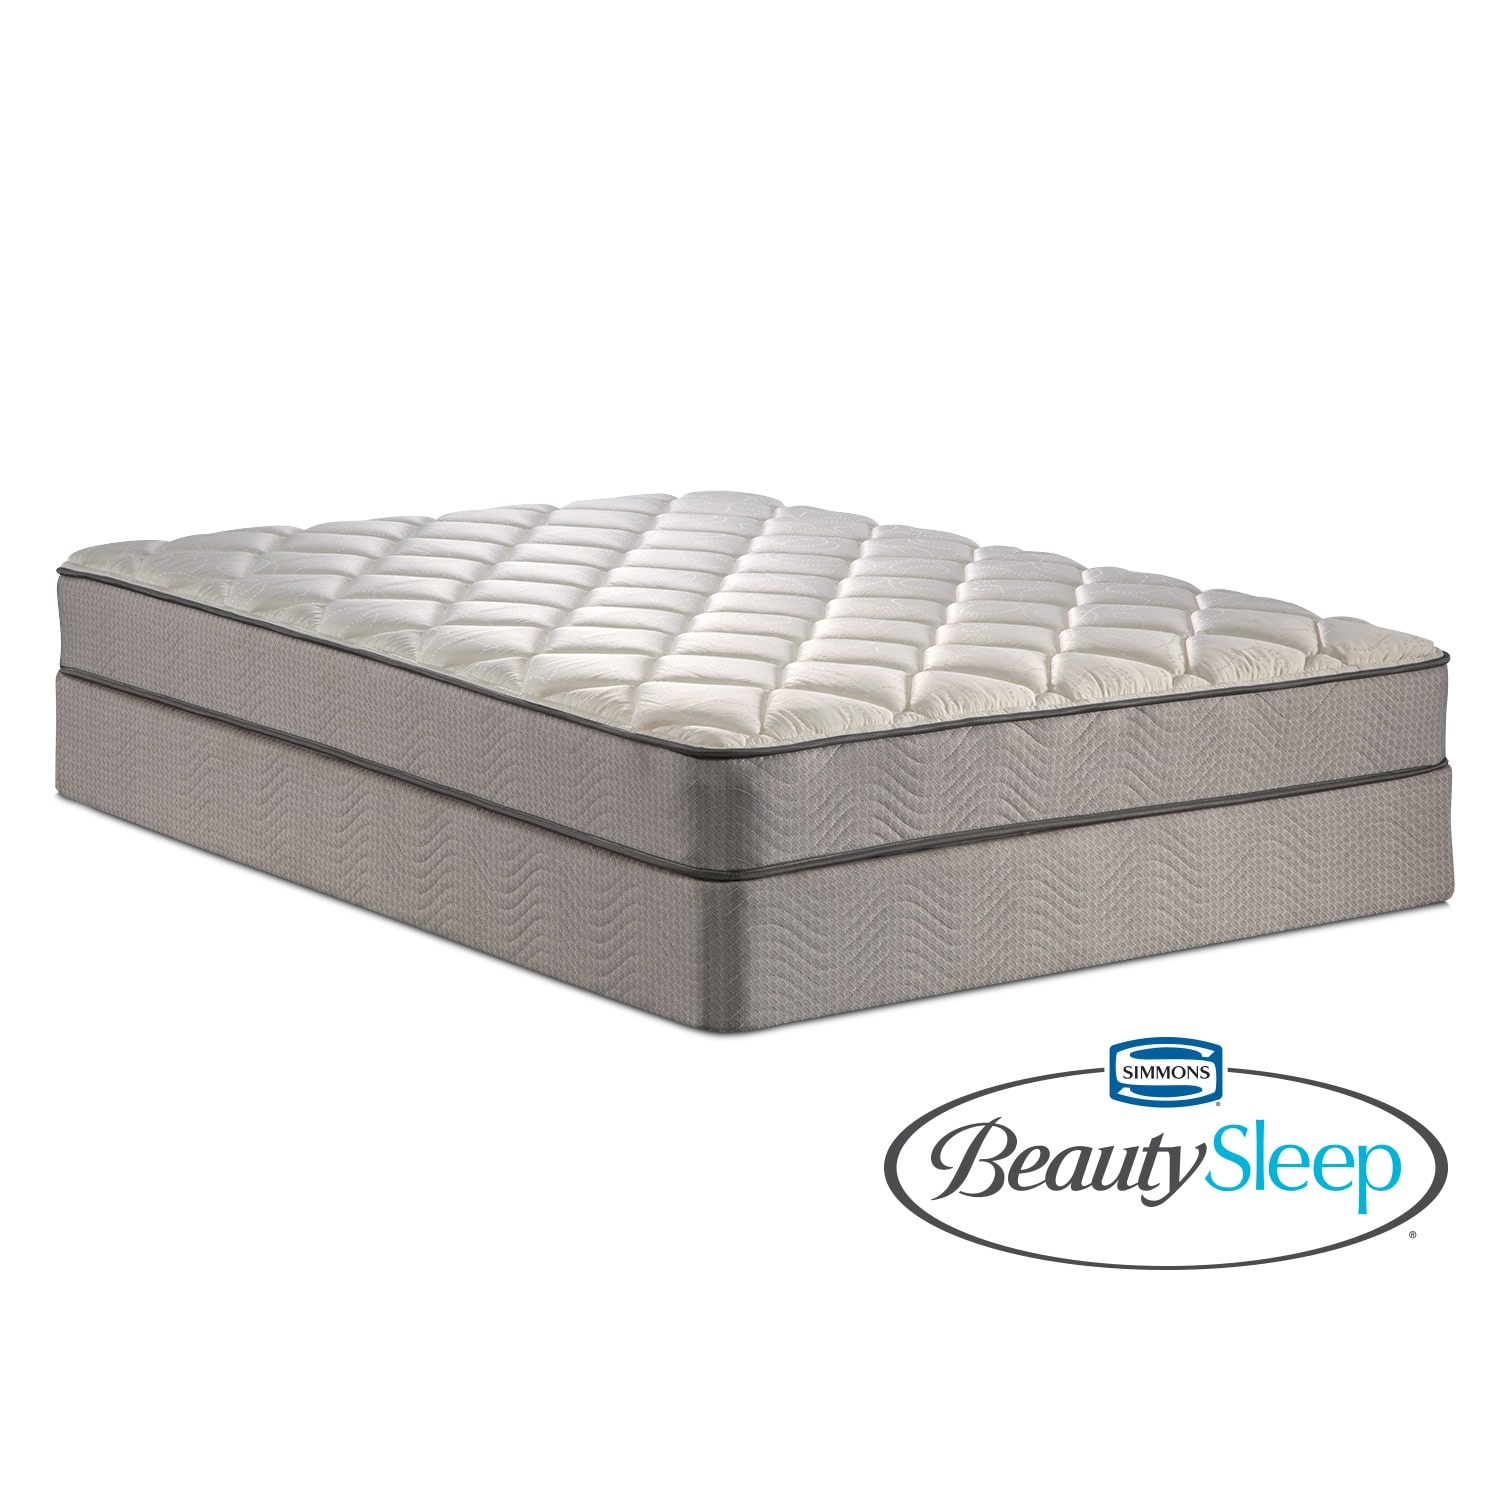 Mattresses and Bedding - Gates Way Twin Mattress/Foundation Set